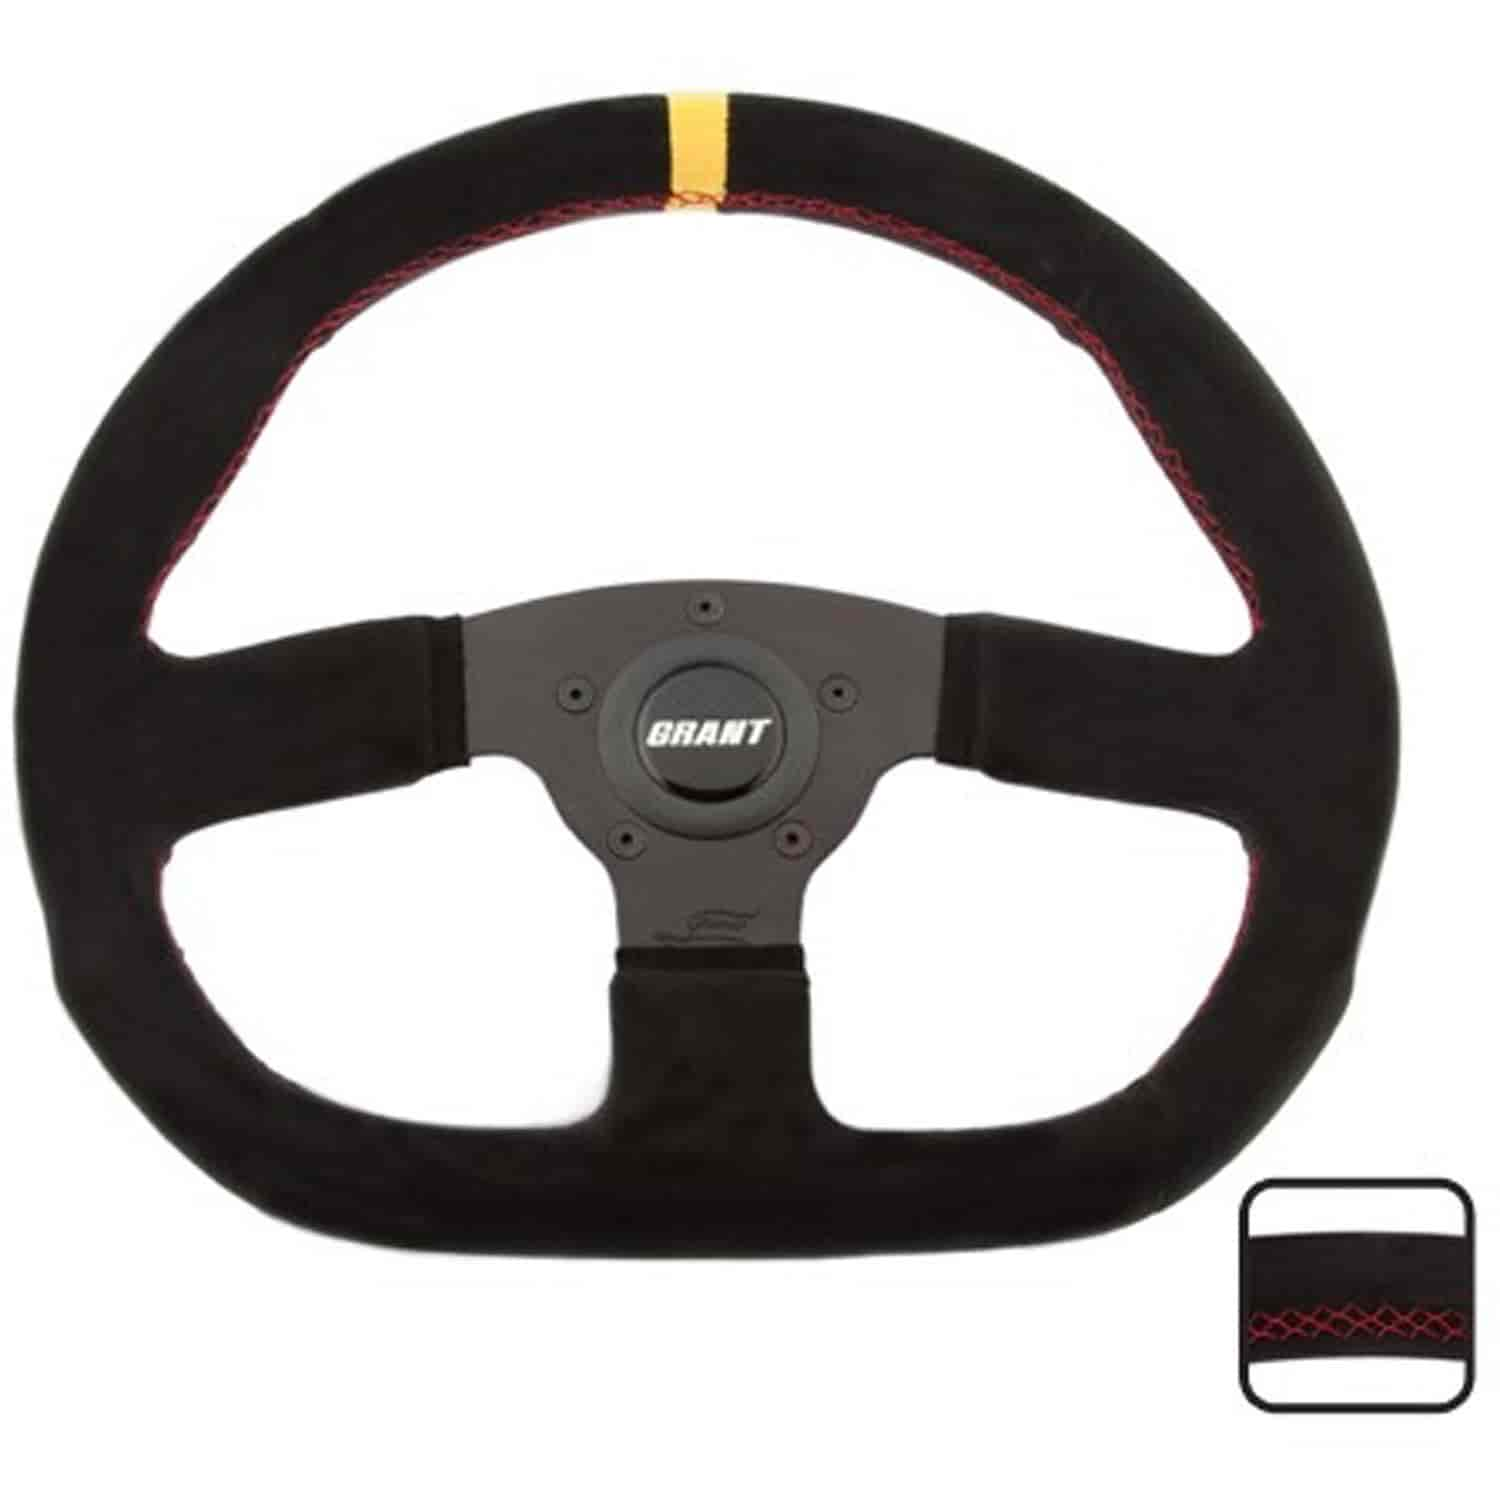 Grant 8548 Suede Series Steering Wheel Black Anodized